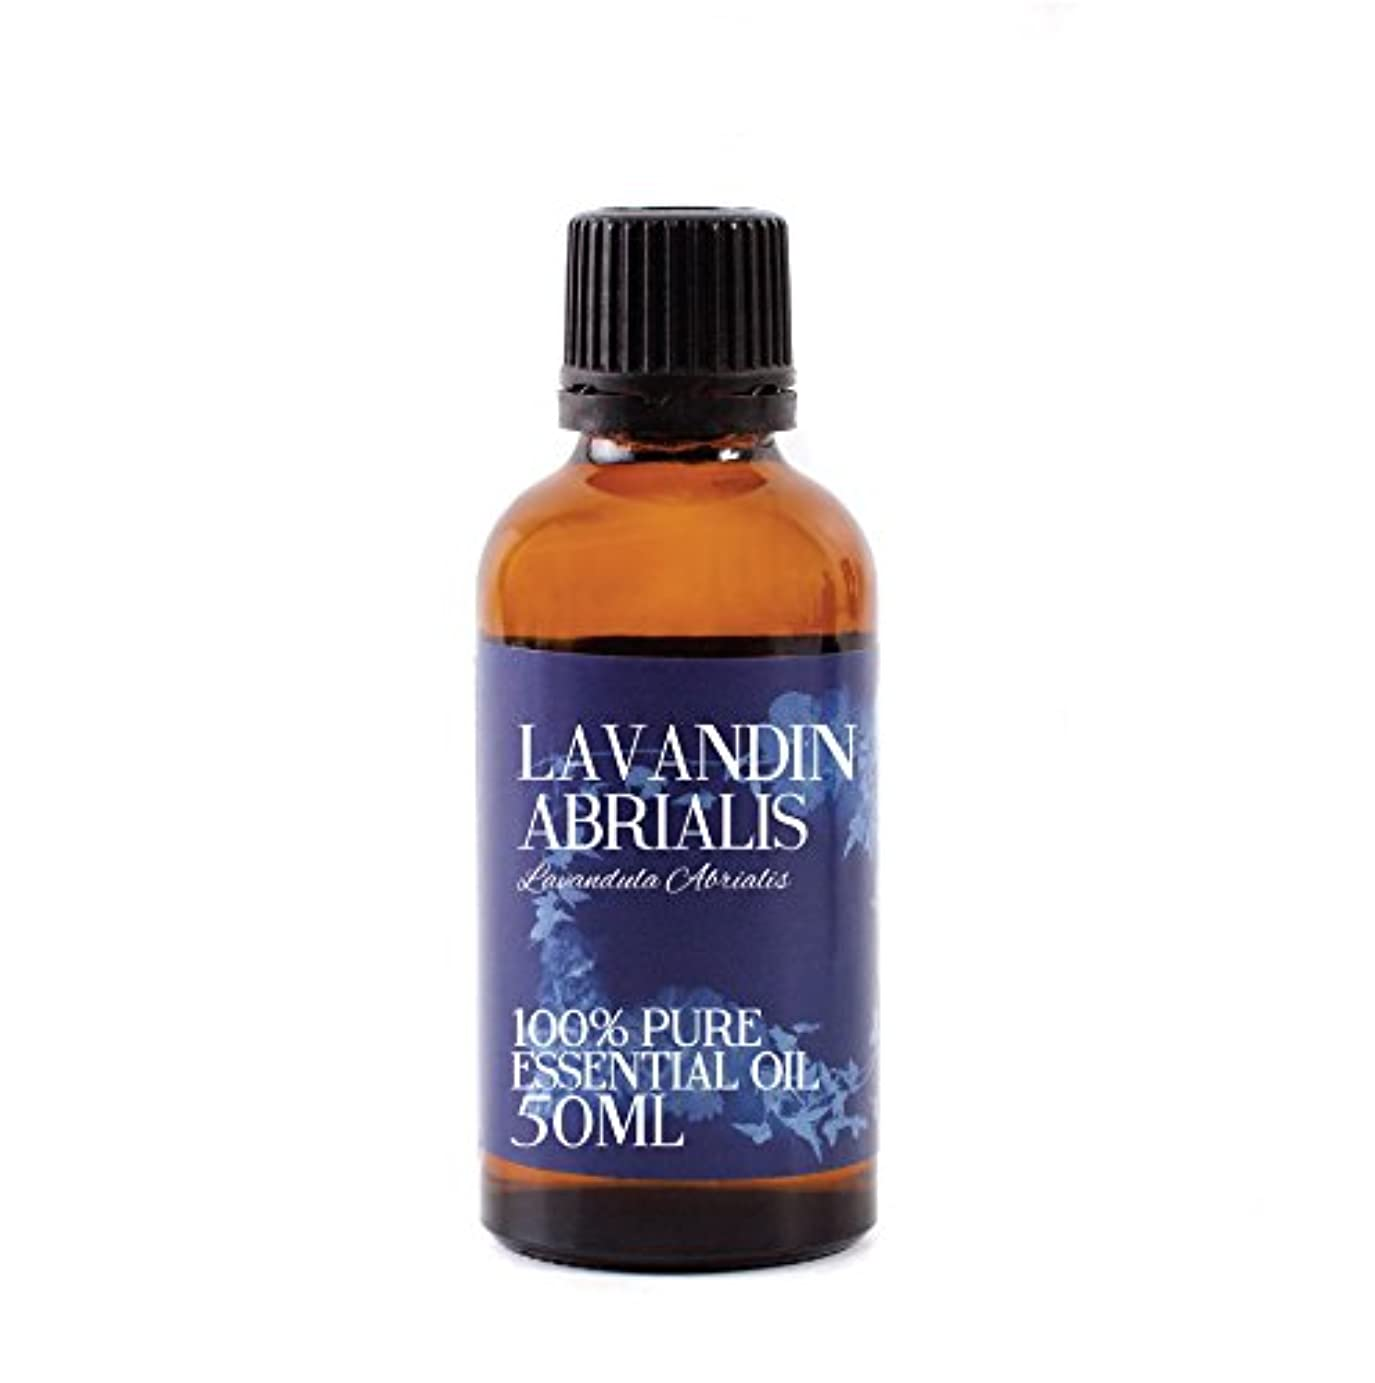 インターネットかまど金曜日Mystic Moments | Lavandin Abrialis Essential Oil - 50ml - 100% Pure